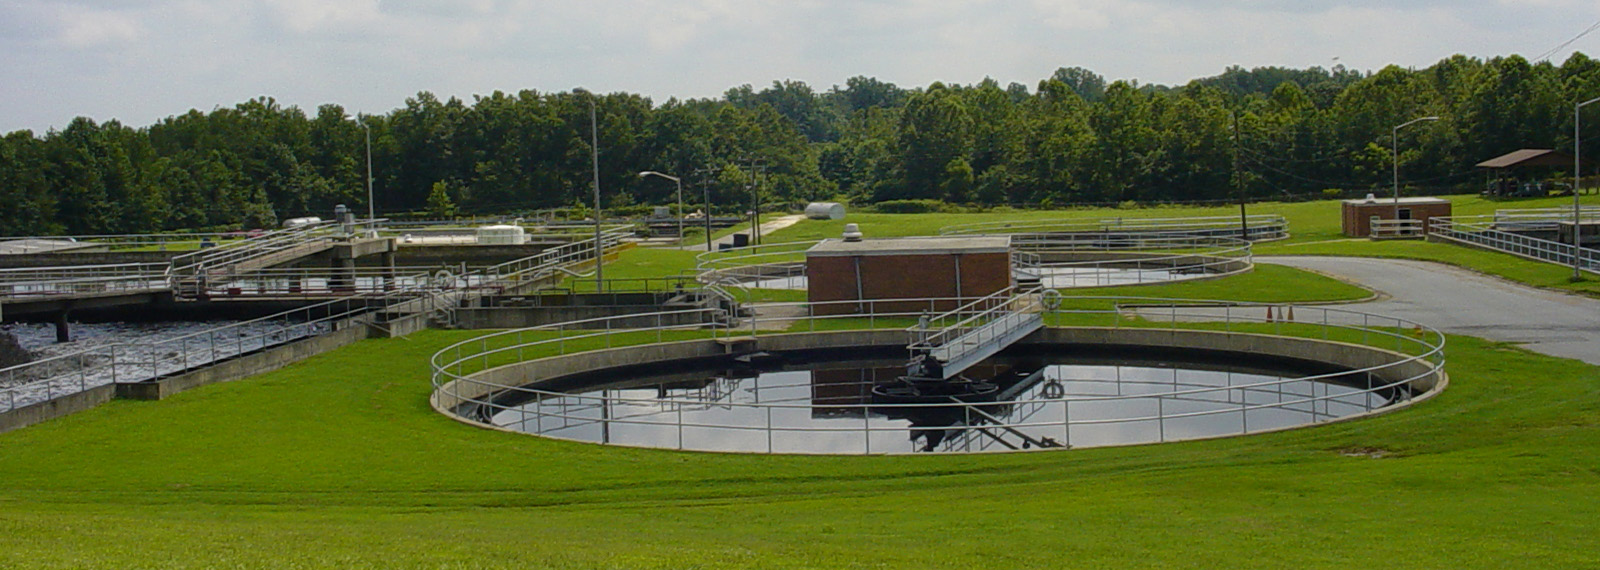 WWTP Operations Images